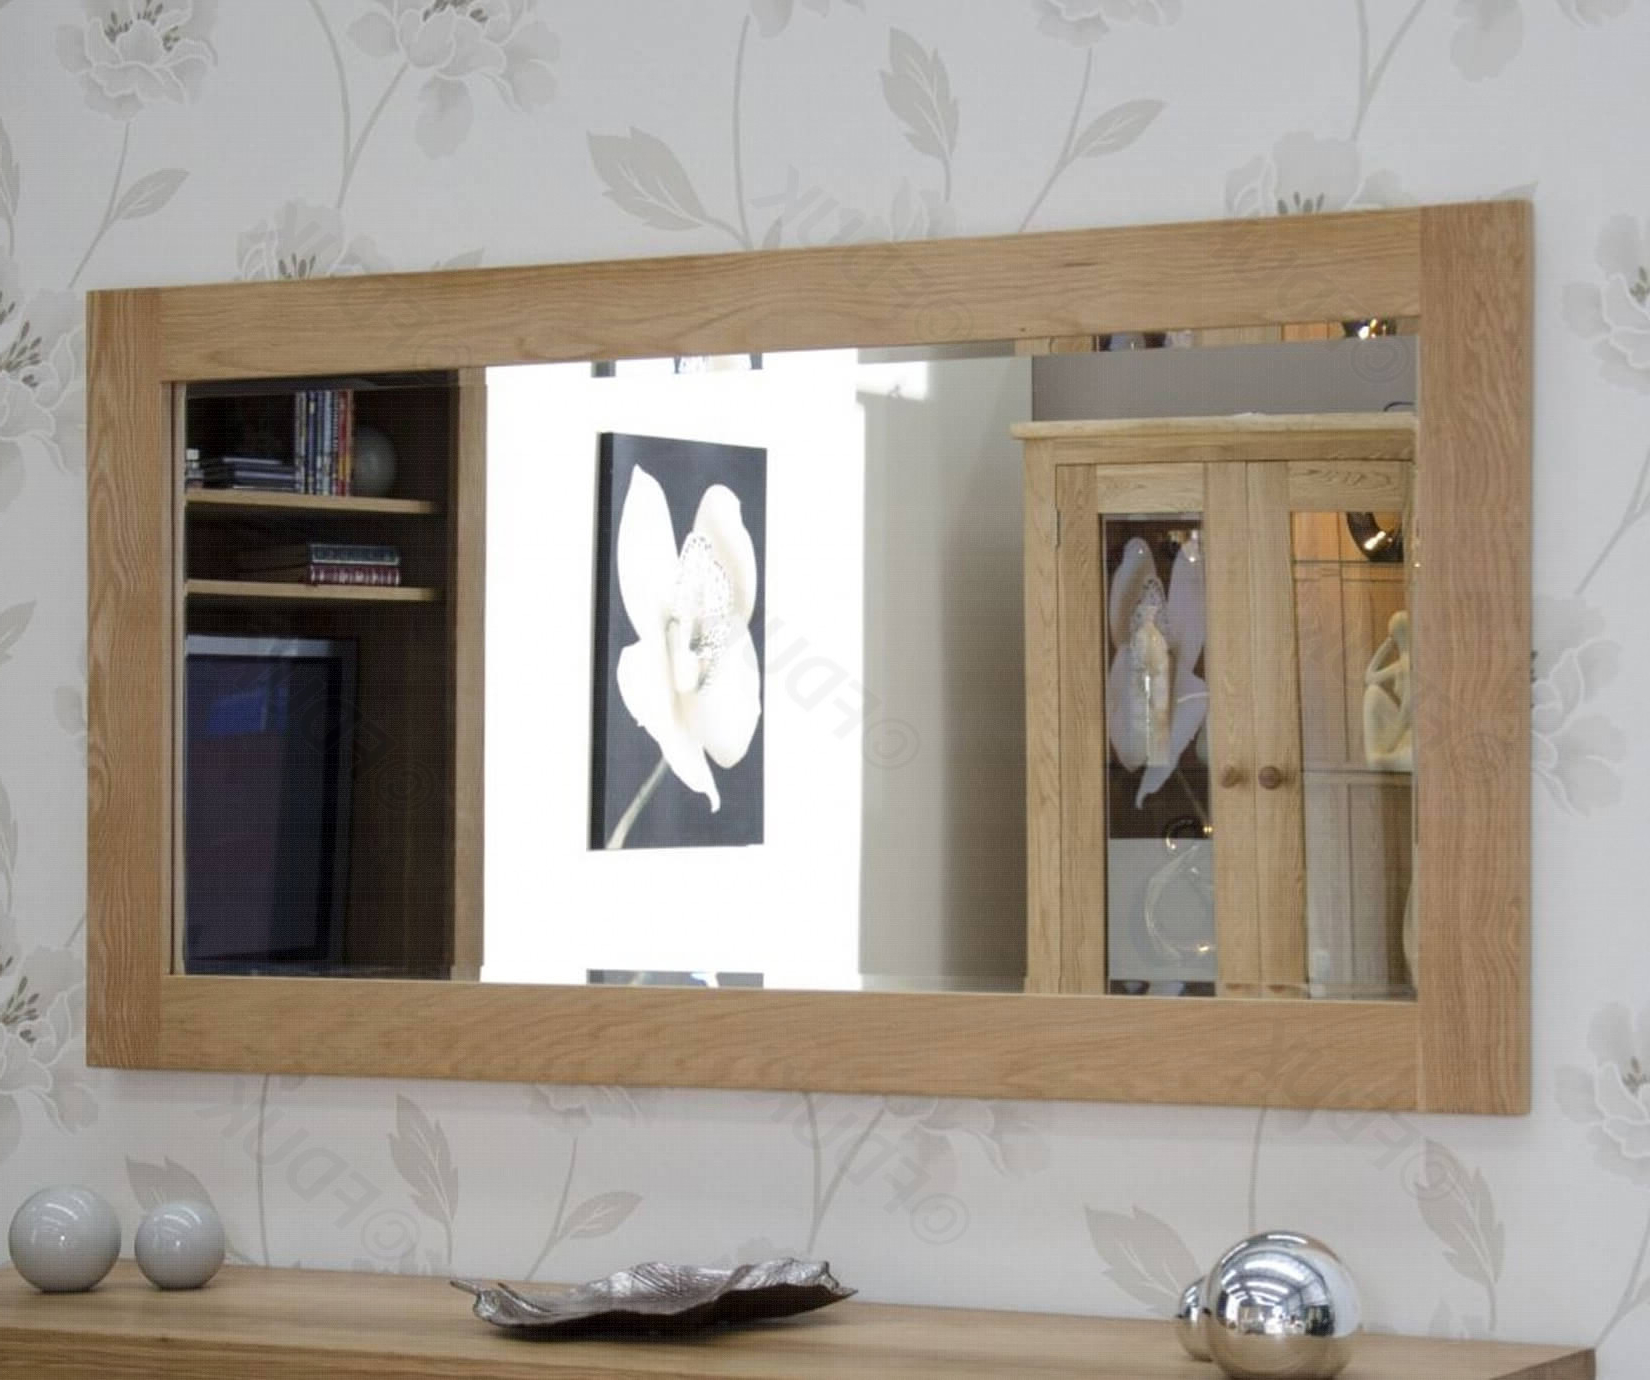 Most Recent Homestyle Gb Oak Rectangular Large Wall Mirror Fduk Best Price Guarantee We  Will Beat Our Competitors Price! Give Our Sales Team A Call On 0116 235 77 Within X Large Wall Mirrors (View 10 of 20)